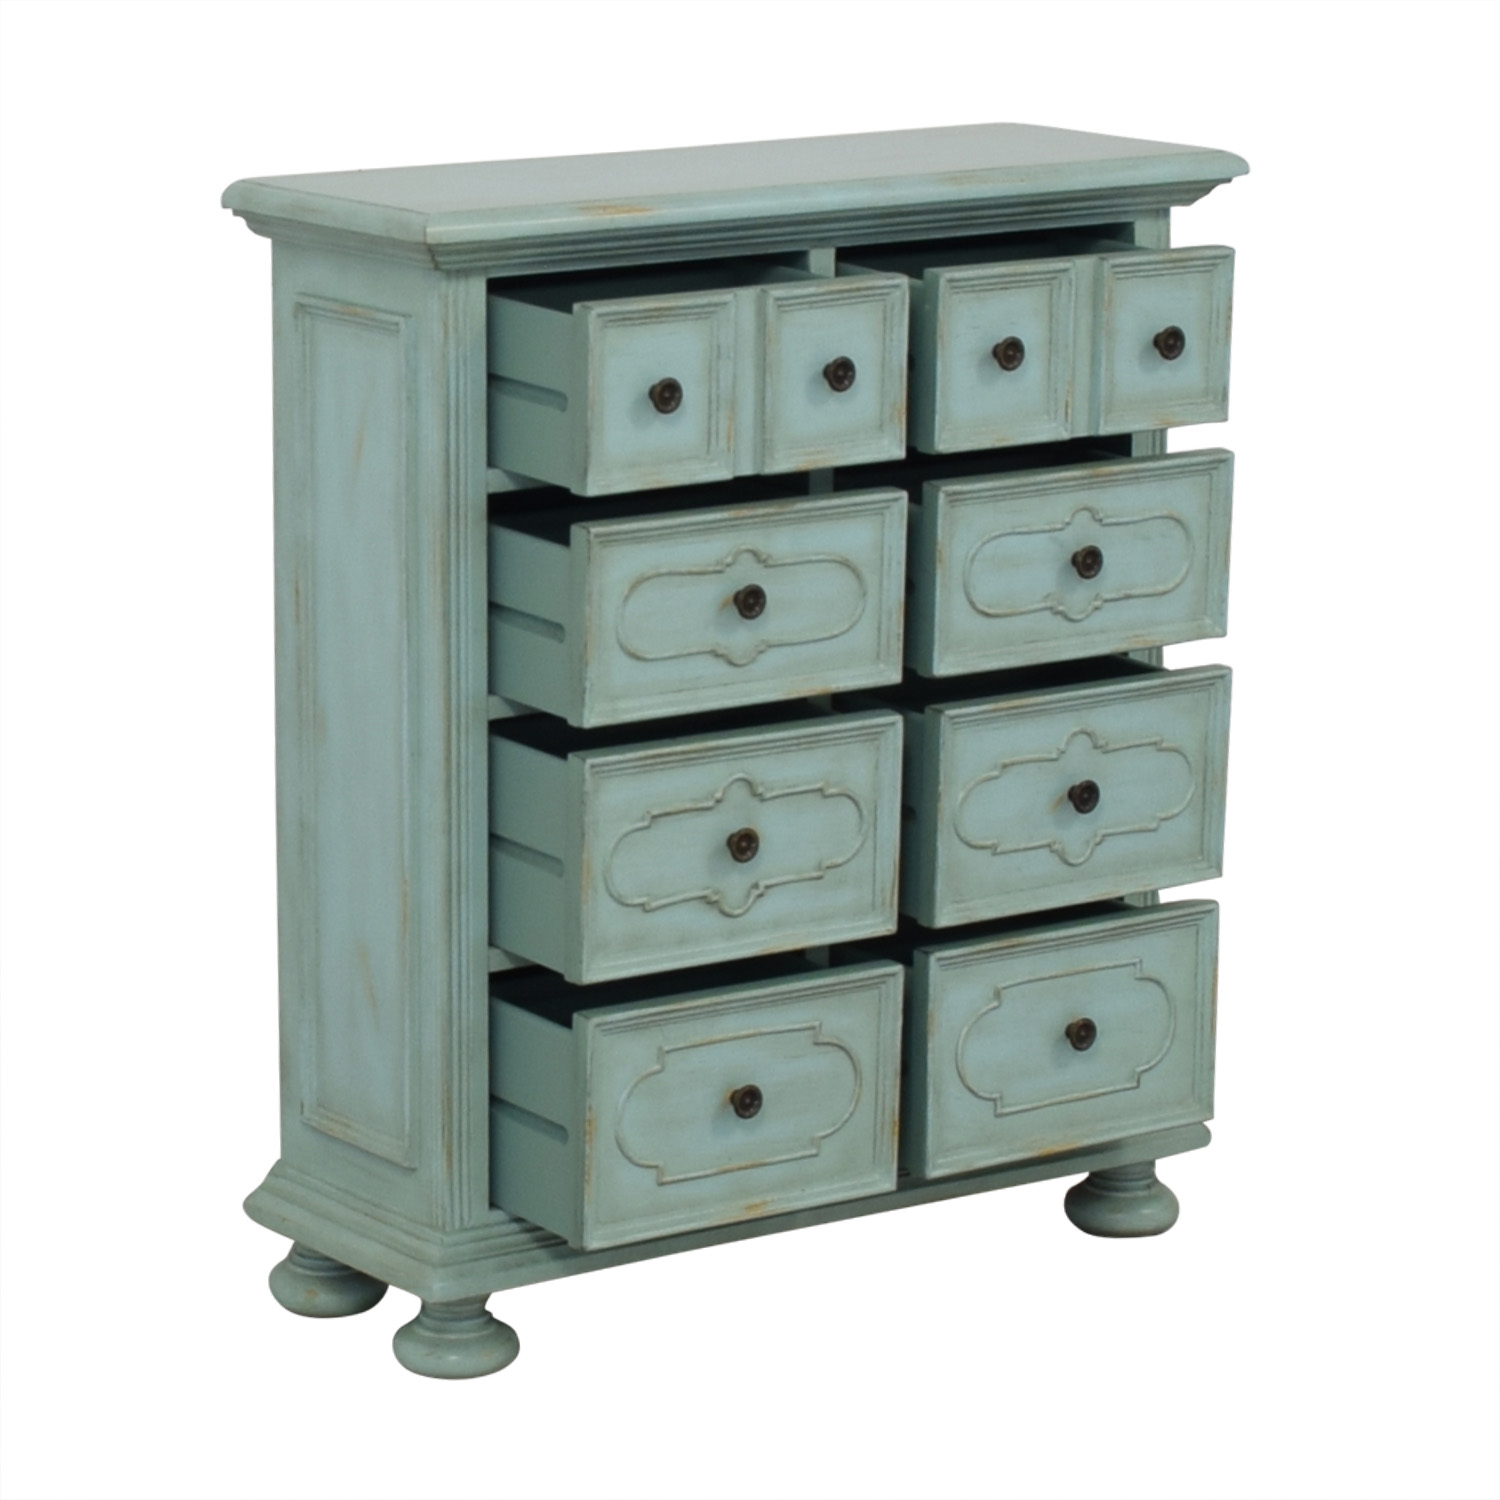 75% OFF   Joss U0026 Main Joss U0026 Main Distressed Dresser / Storage